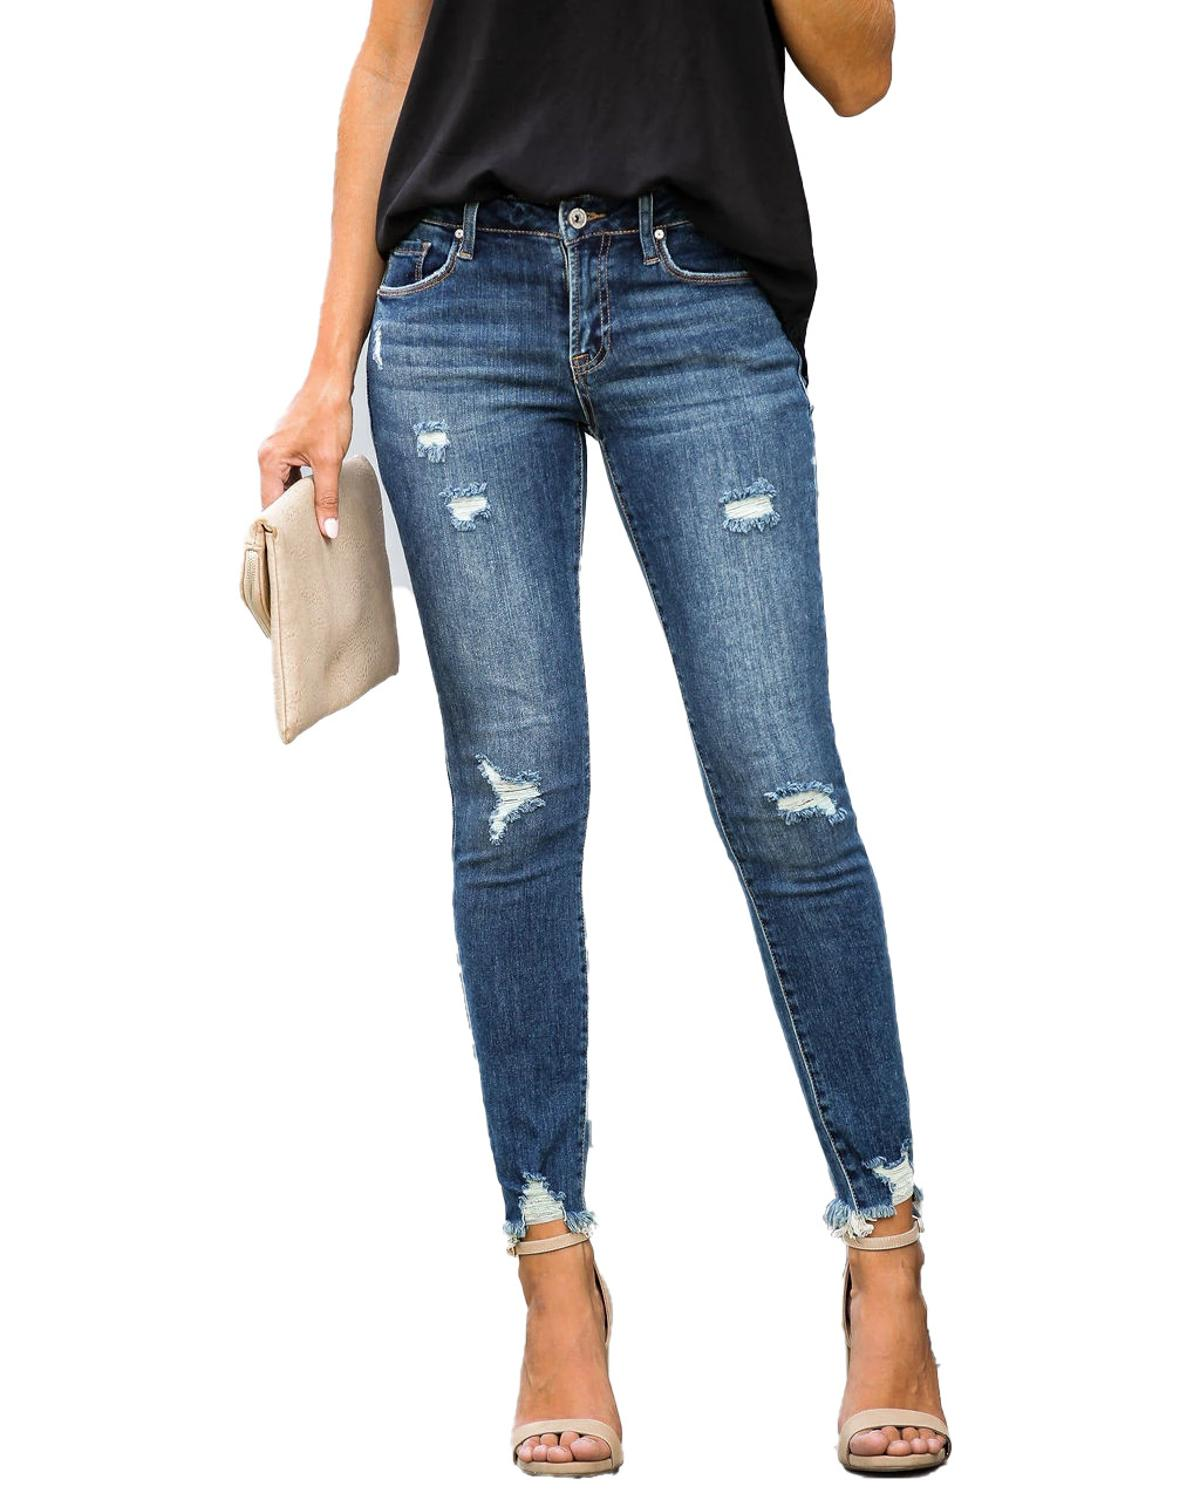 Ripped Jeans Pencil-Pants Destroyed Casual-Trousers Mid-Waist Distressed Vintage Summer